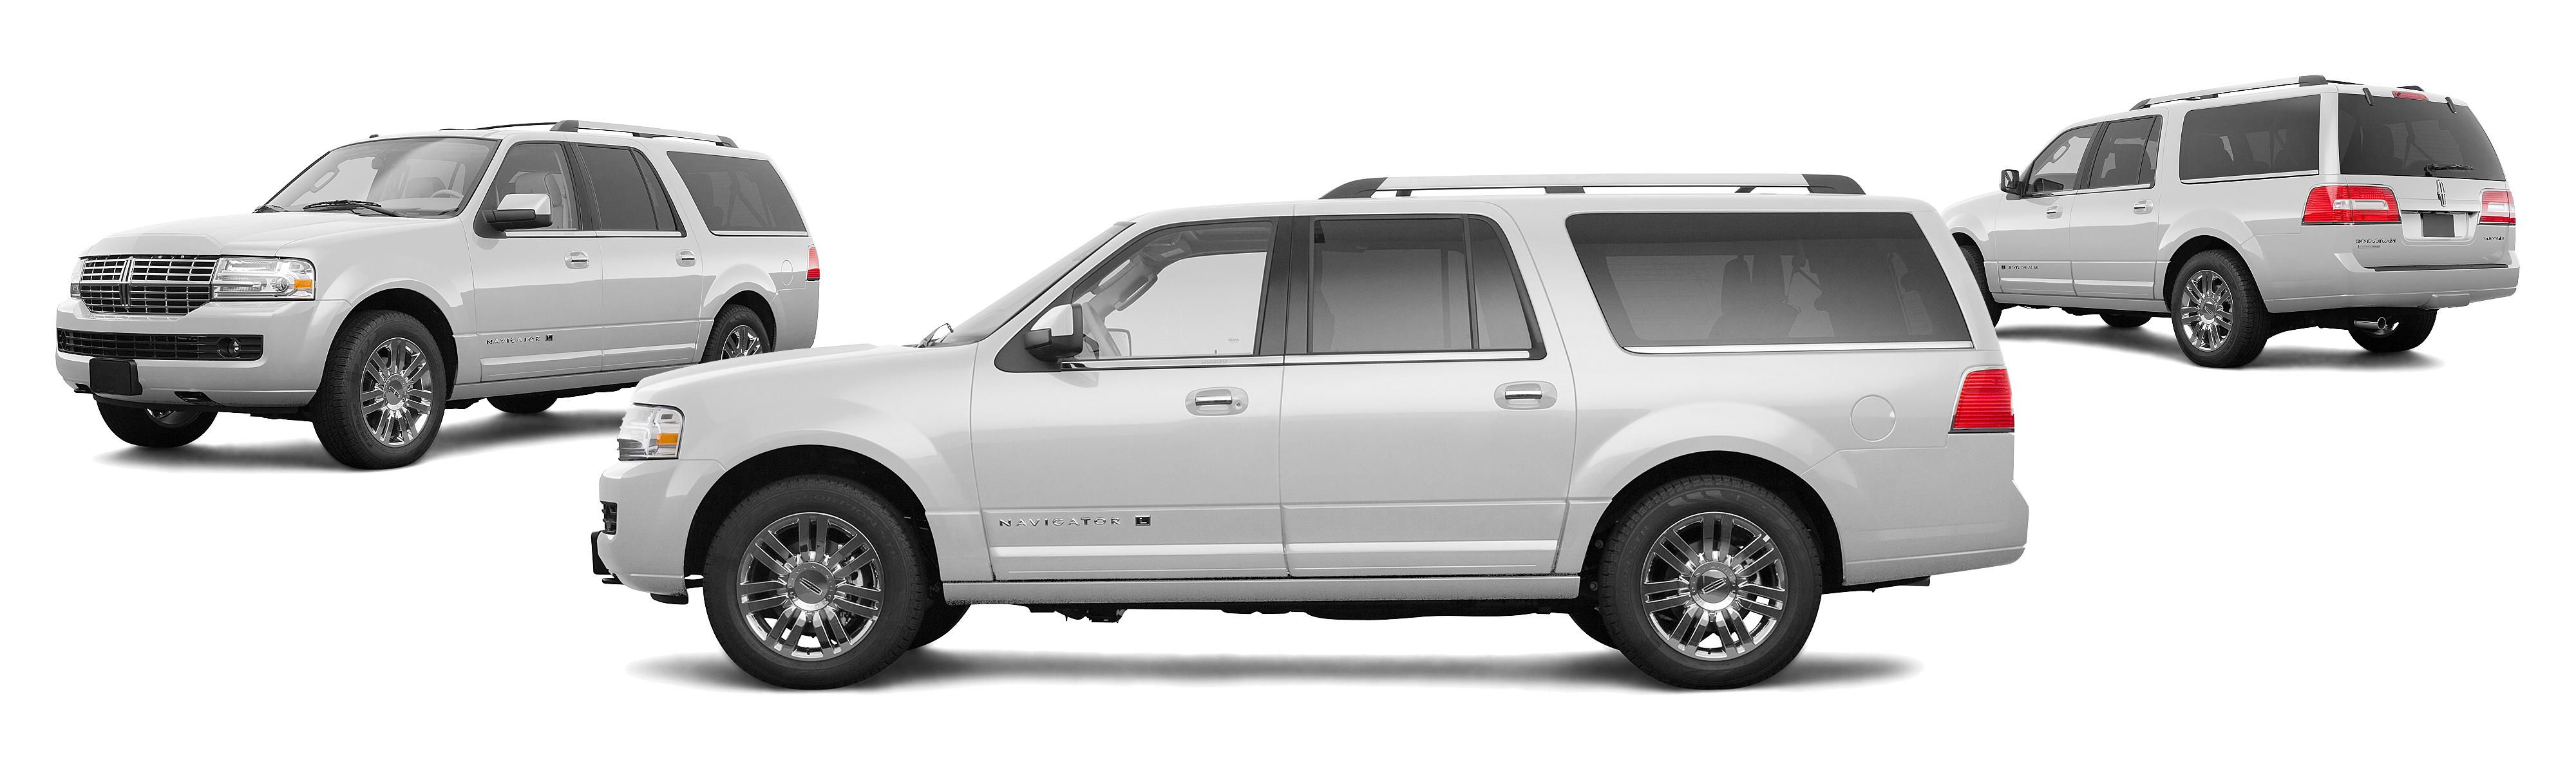 2008-lincoln-navigator-l-4dr-suv-white-chocolate-tri-coat-composite-large Take A Look About Lincoln 2008